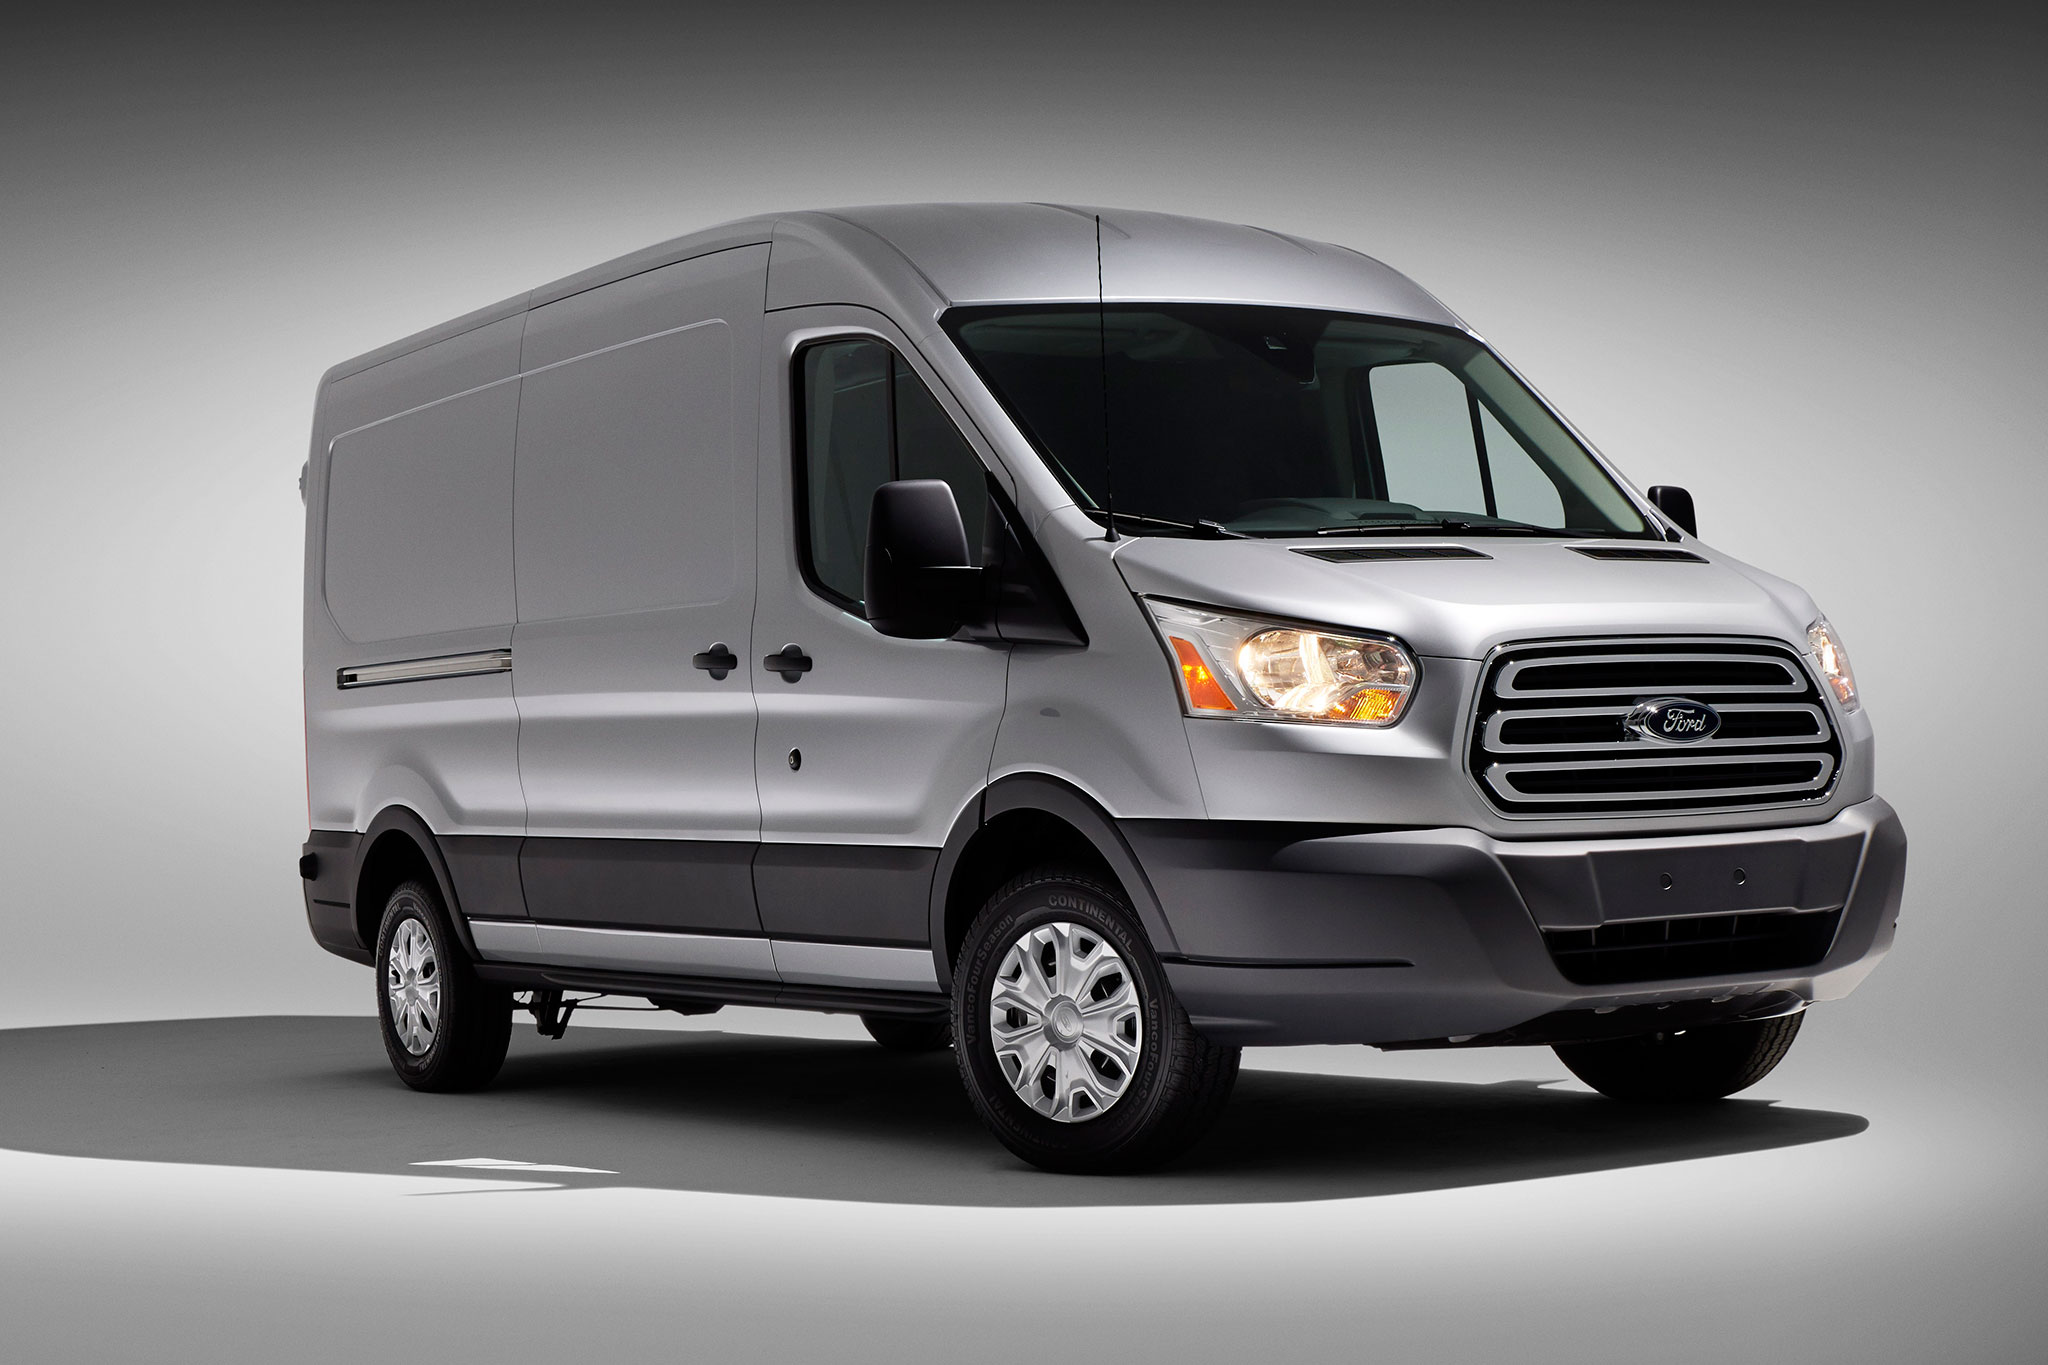 2015 ford transit van image 16. Black Bedroom Furniture Sets. Home Design Ideas